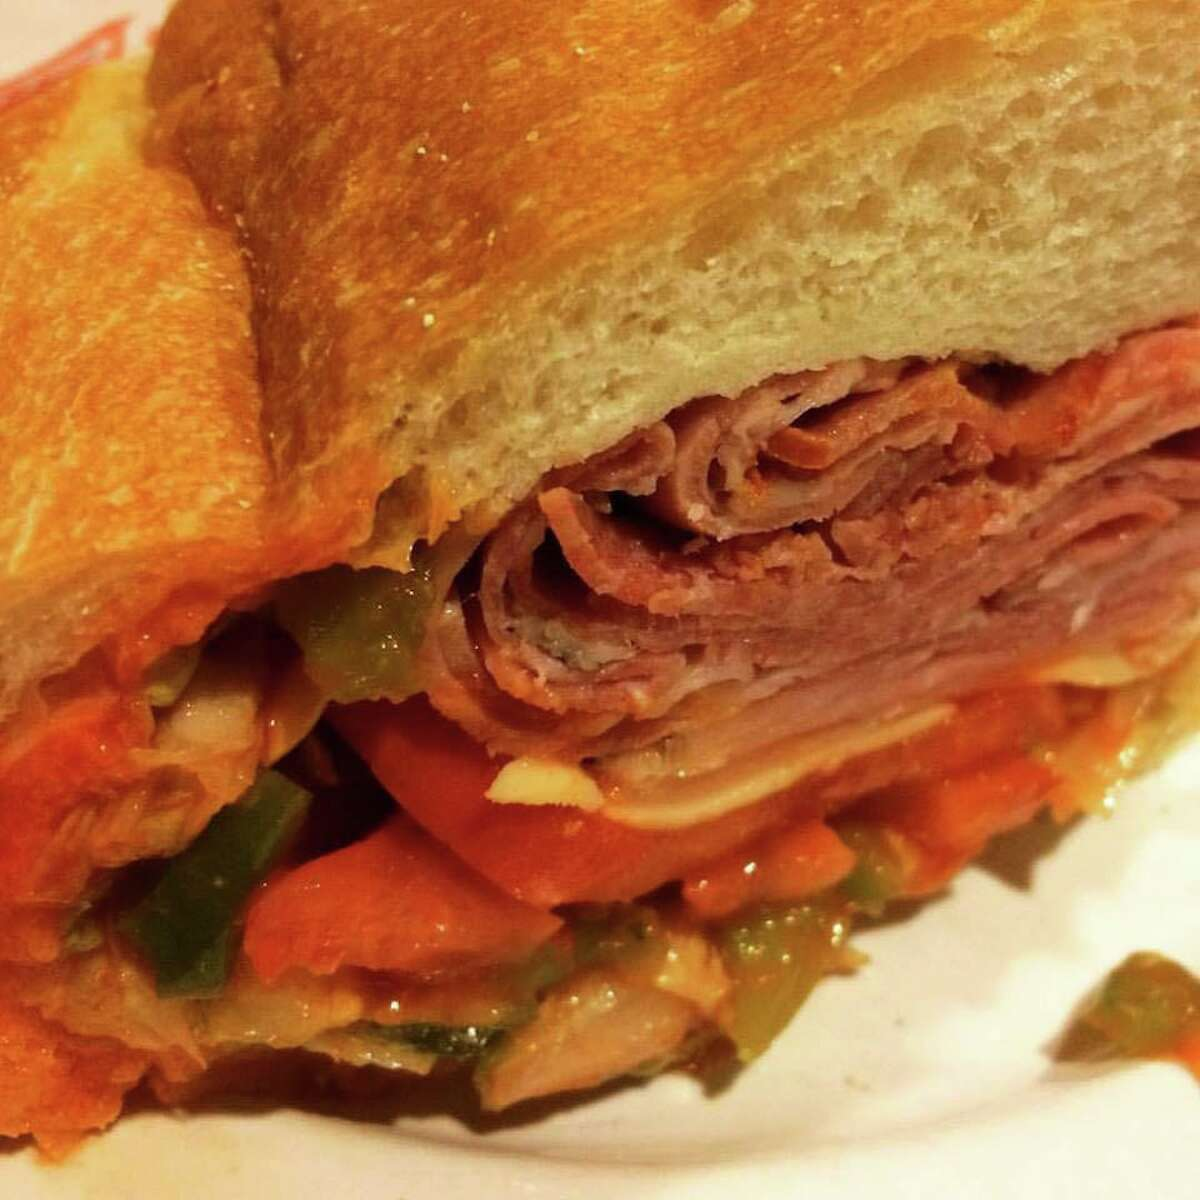 A sandwich from Nardelli's Grinder Shoppe.